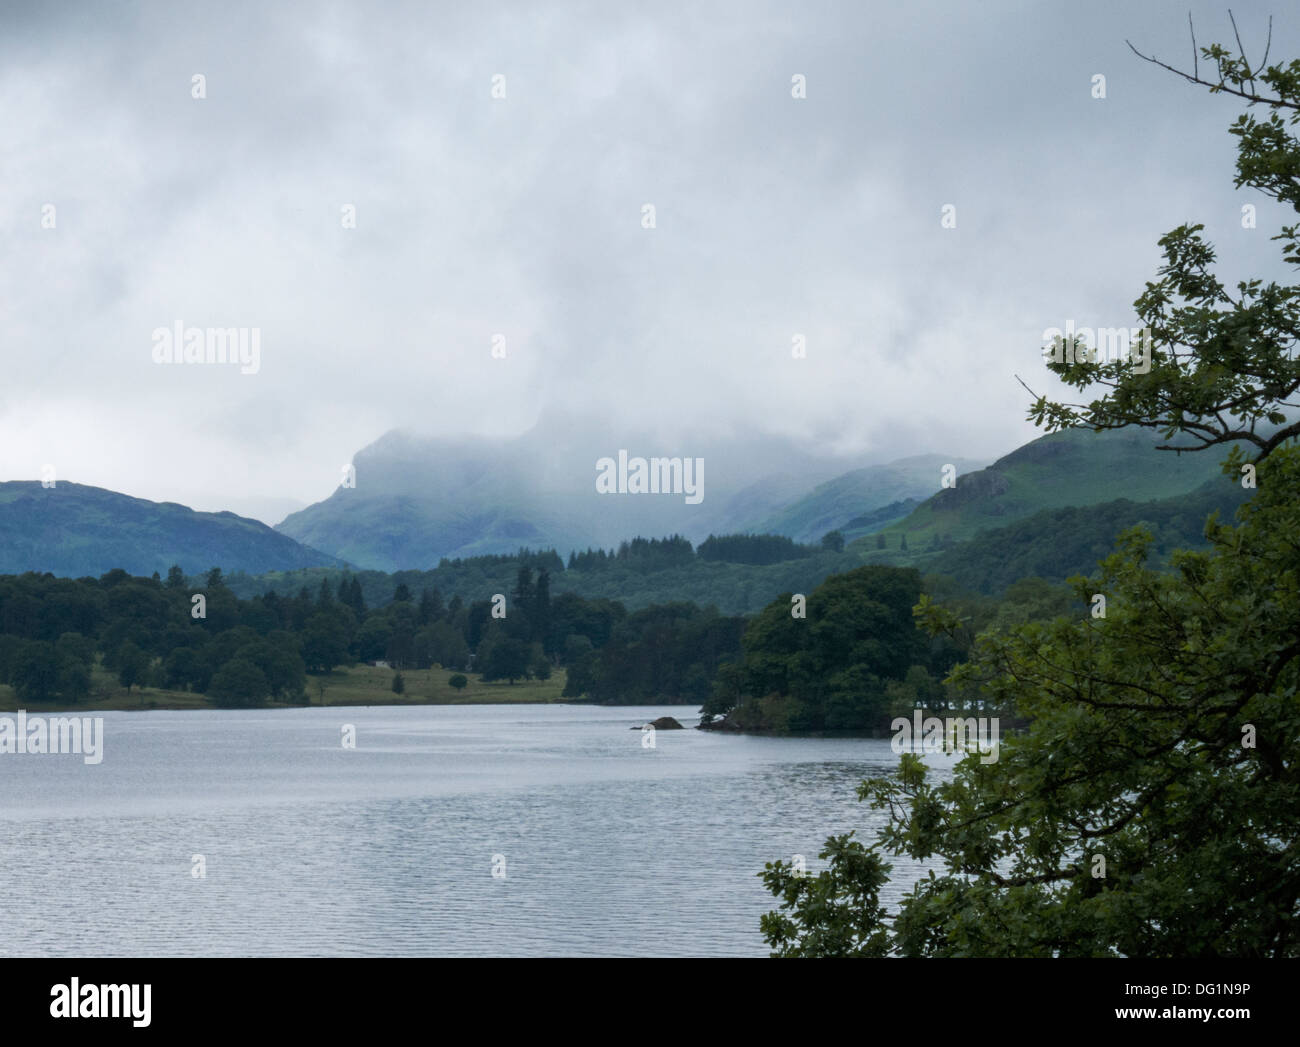 View across Lake WIndermere, with low clouds covering hills; trees in foreground. - Stock Image